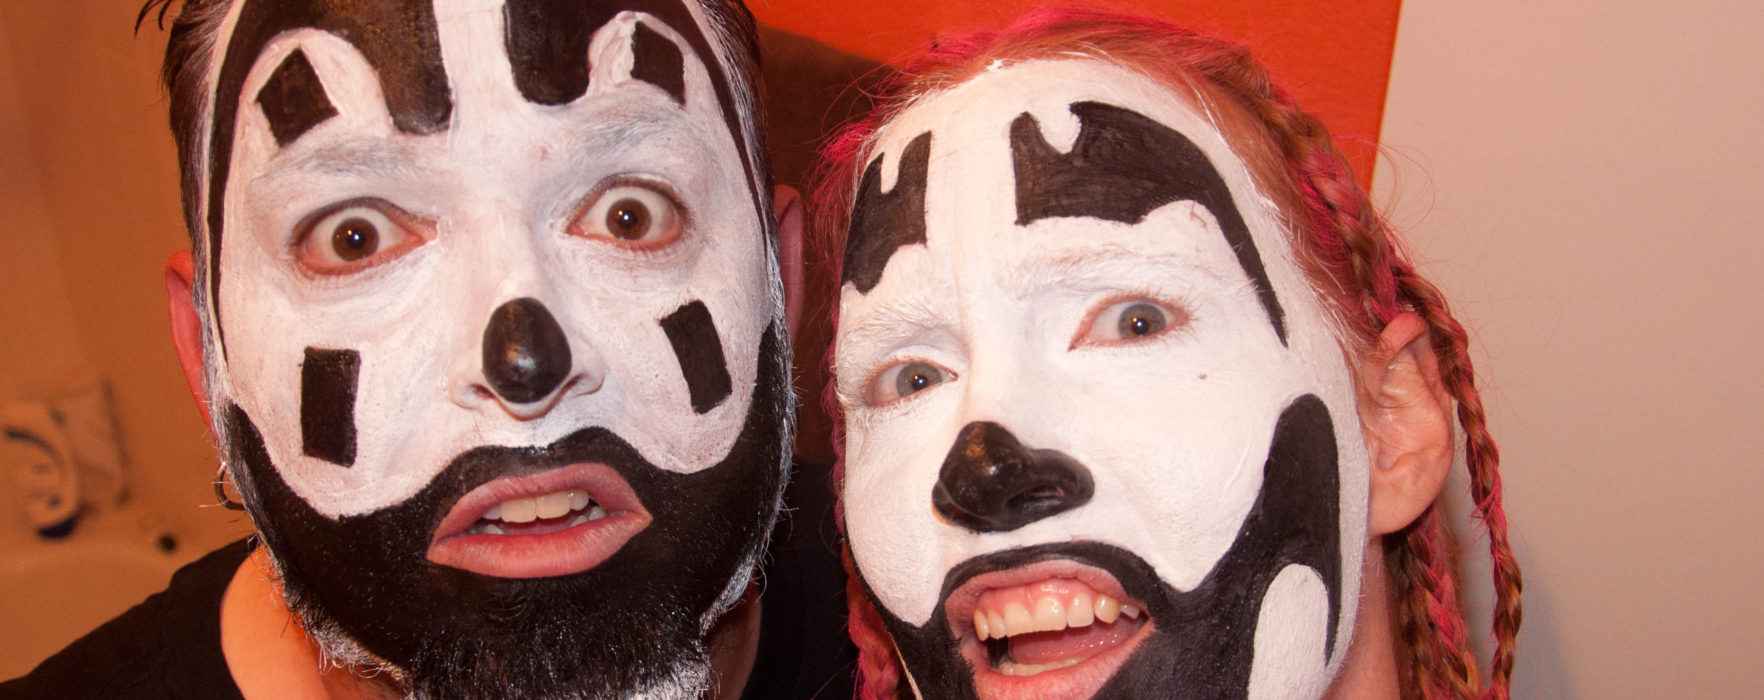 REVIEW: Insane Clown Posse at Manchester Academy 2